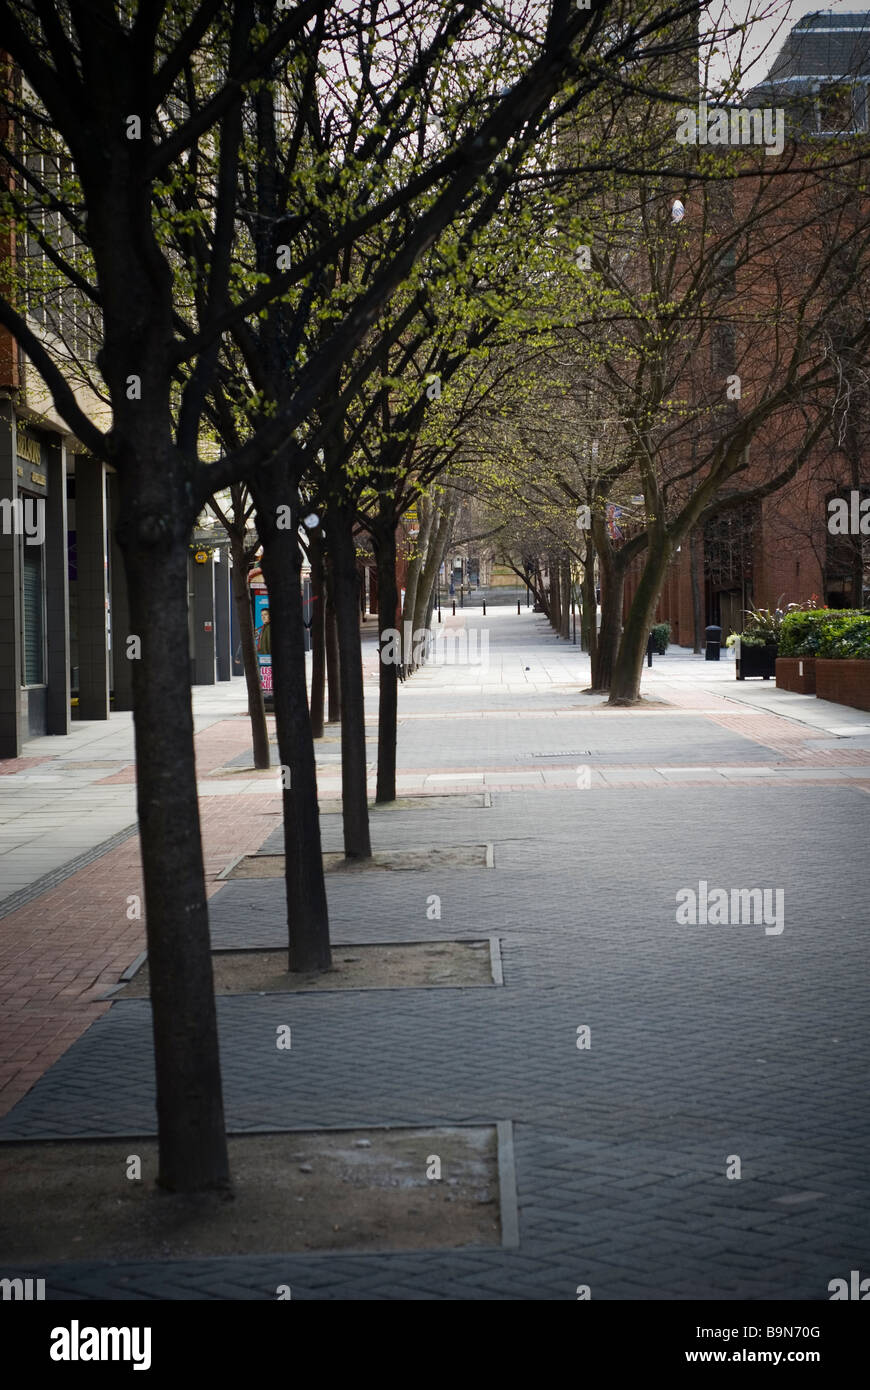 Empty street in Manchester city centre UK - Stock Image